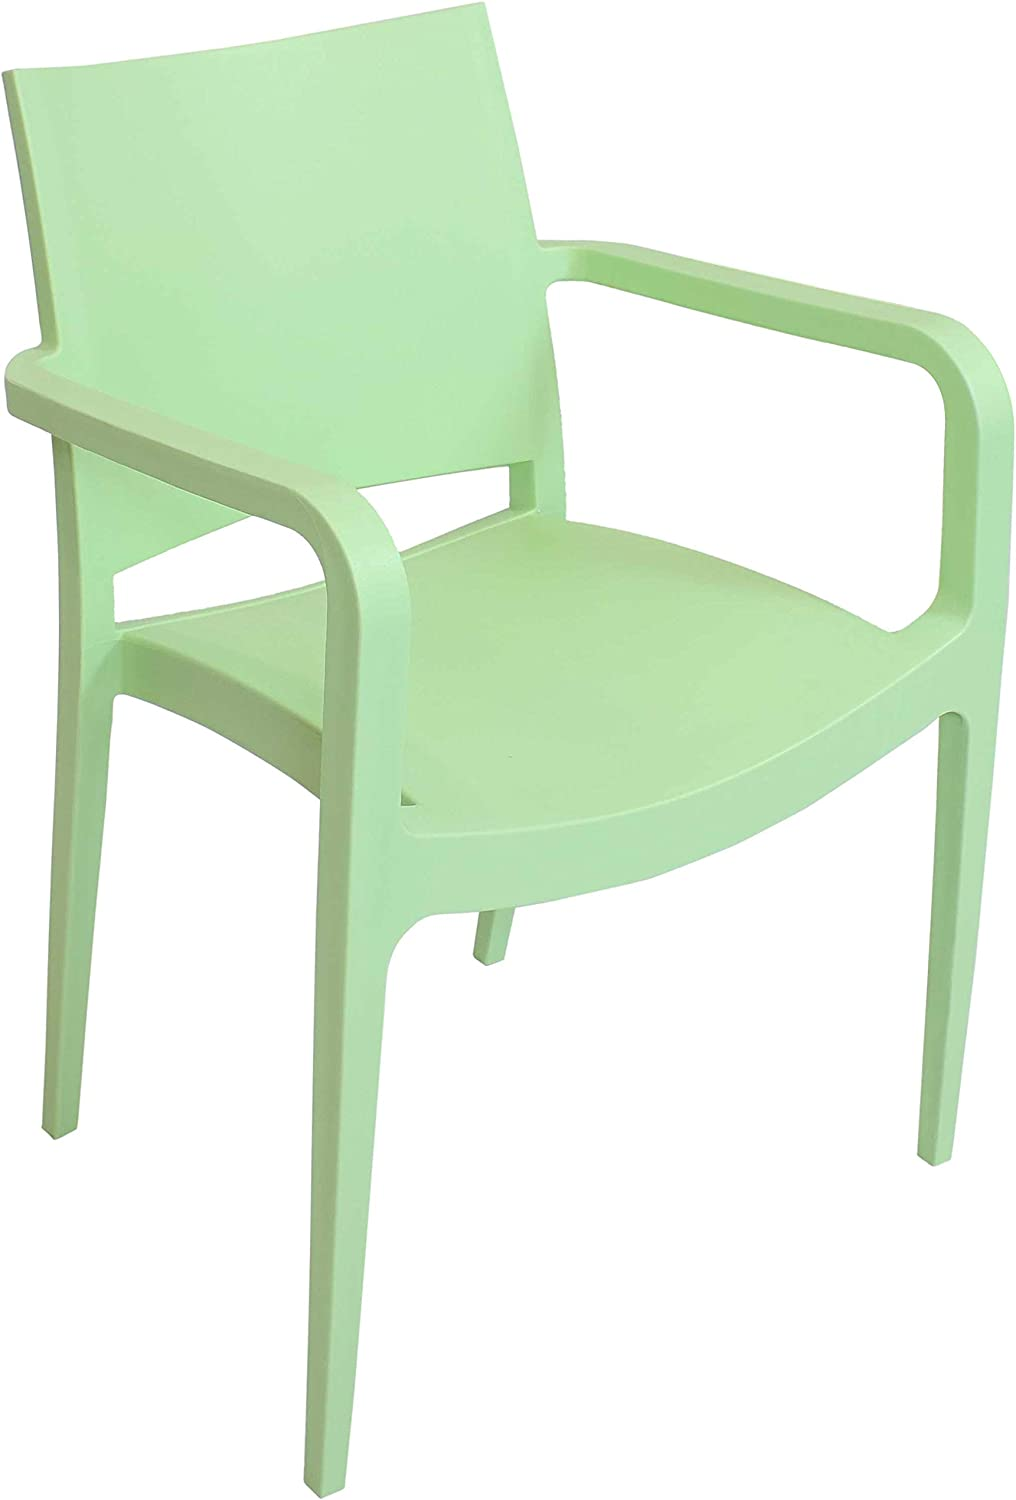 Sunnydaze Landon Plastic Patio Dining Armchair Seat - Modern Design - Deck, Lawn and Garden Seat - Indoor or Outdoor Use - Commercial Grade All-Weather - Light Green - 1 Chair